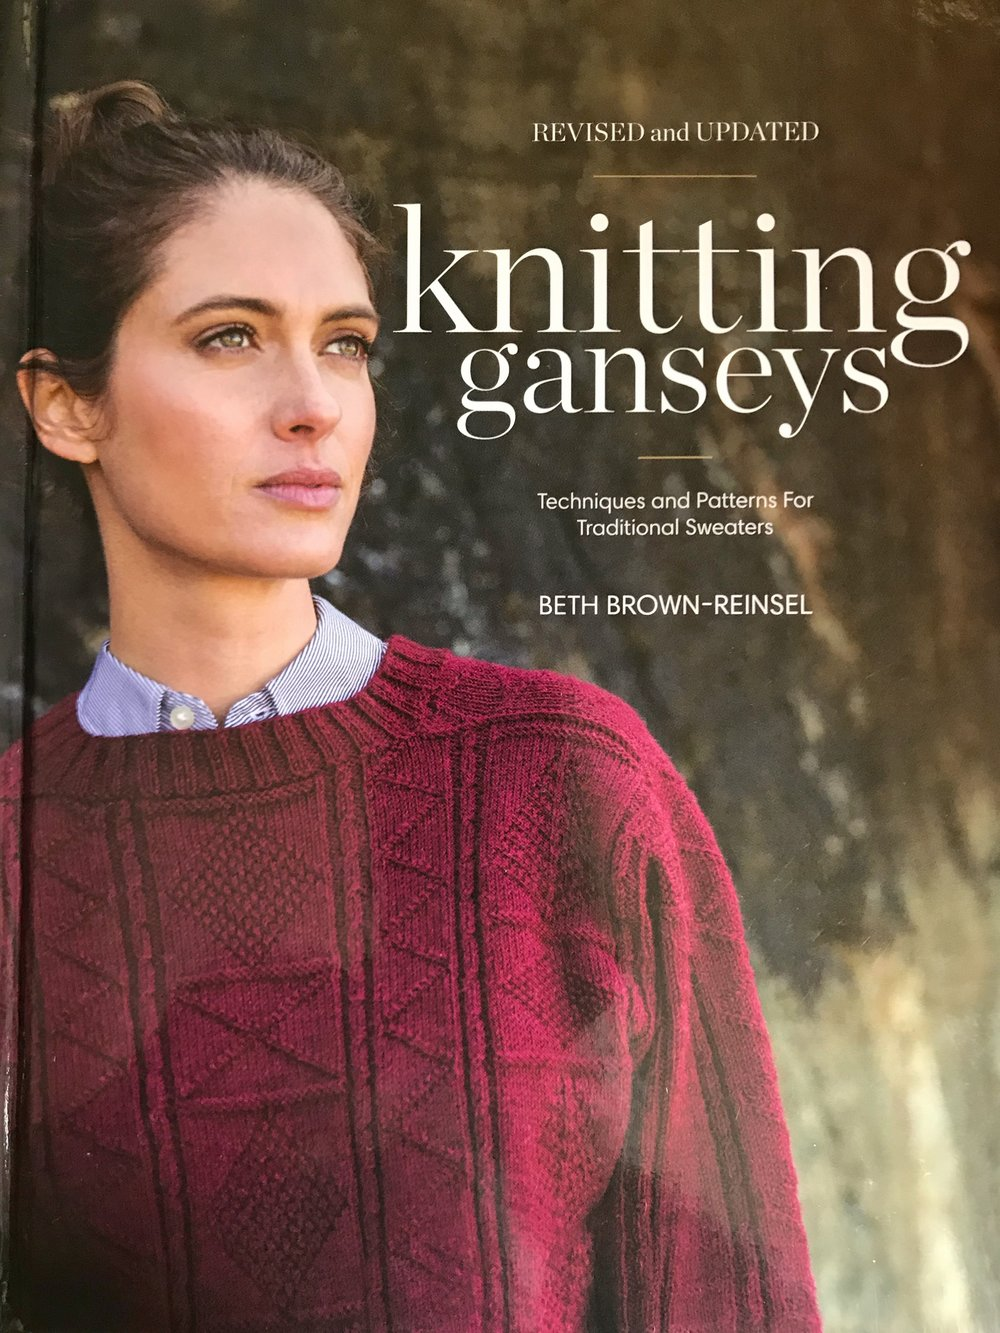 knitting gansesys updated.jpg